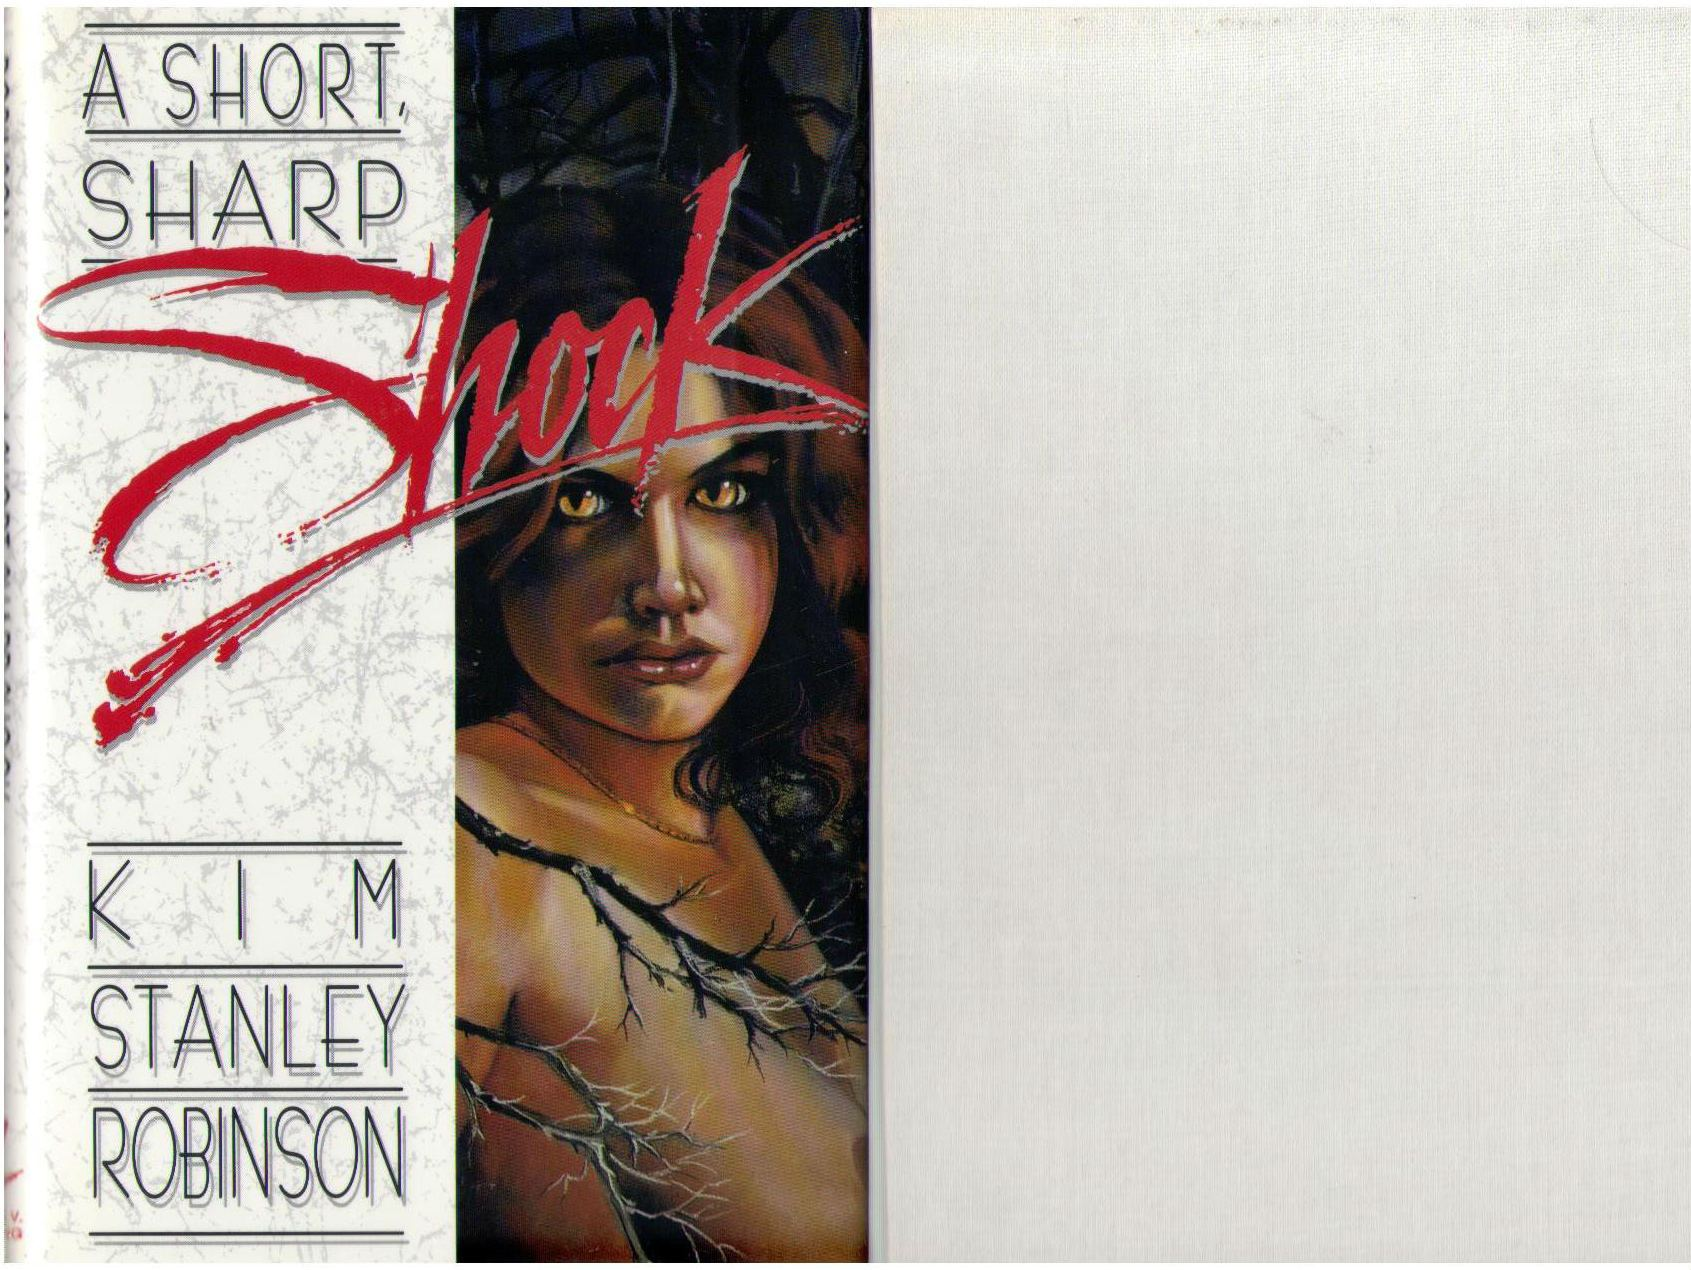 A Short, Sharp Shock, Robinson, Kim Stanley